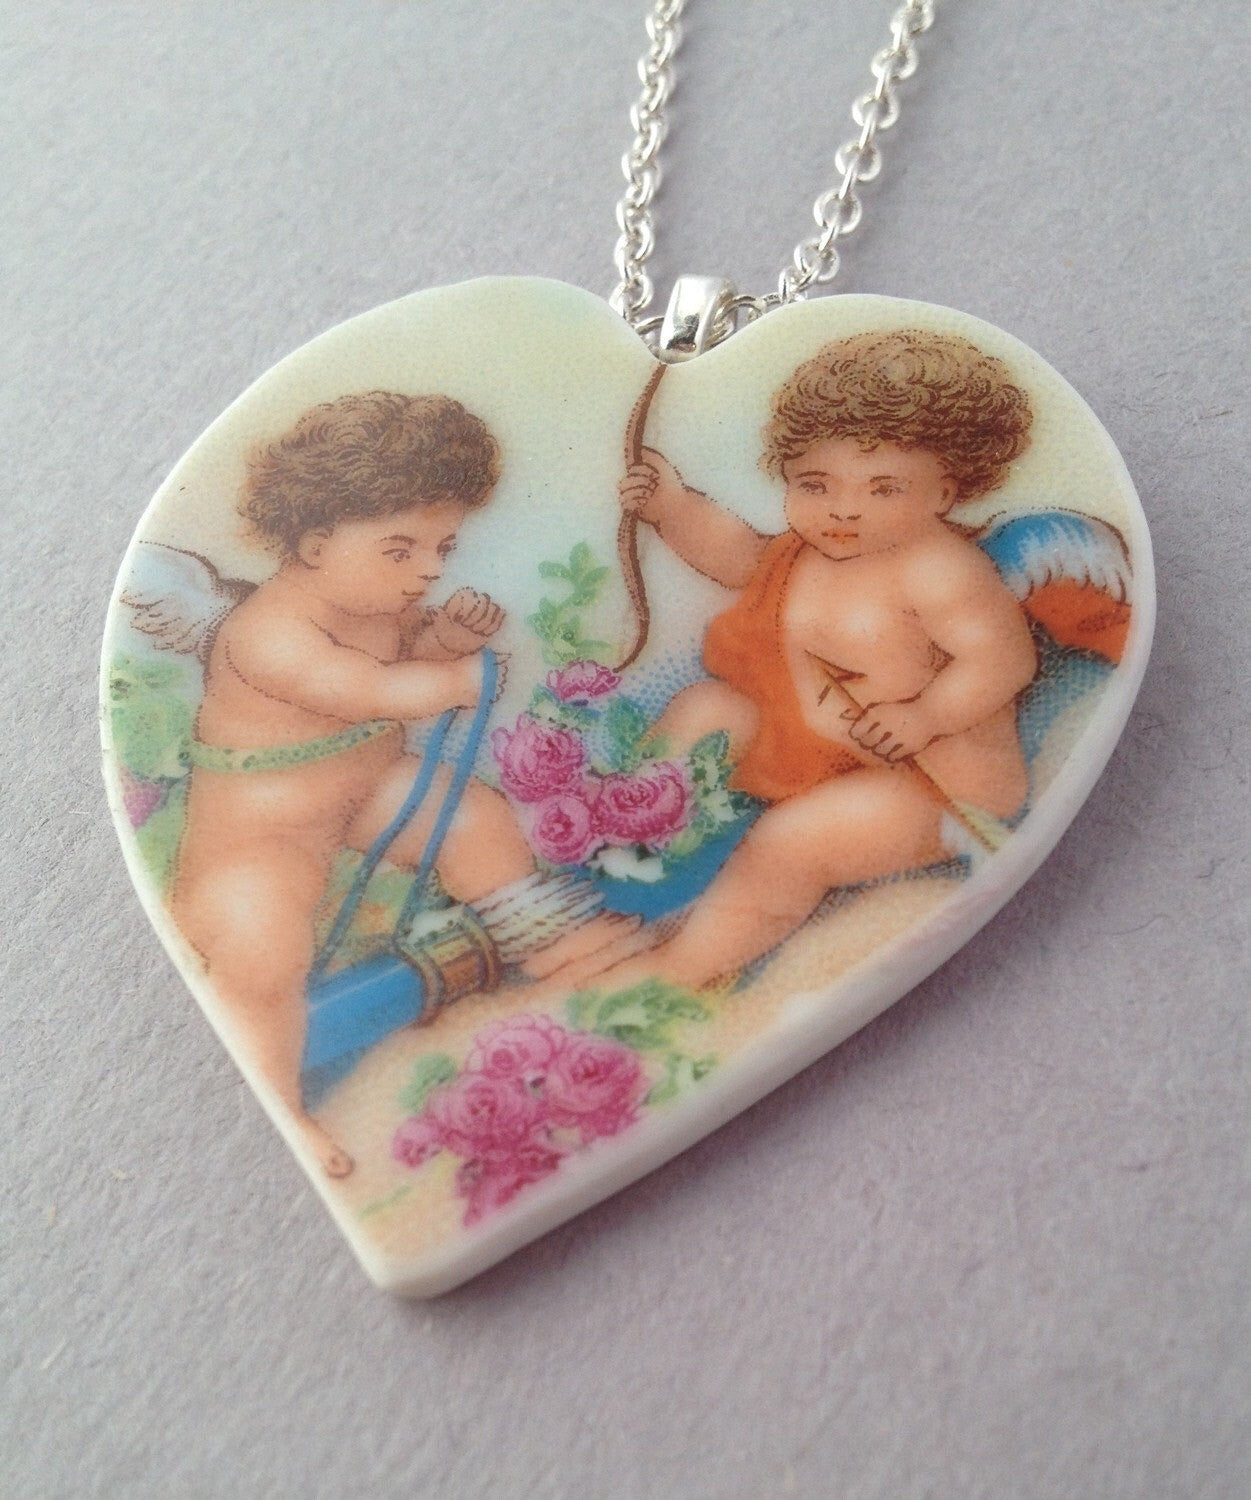 Broken China jewelry - vintage dishes - Valentine's Day gift ideas